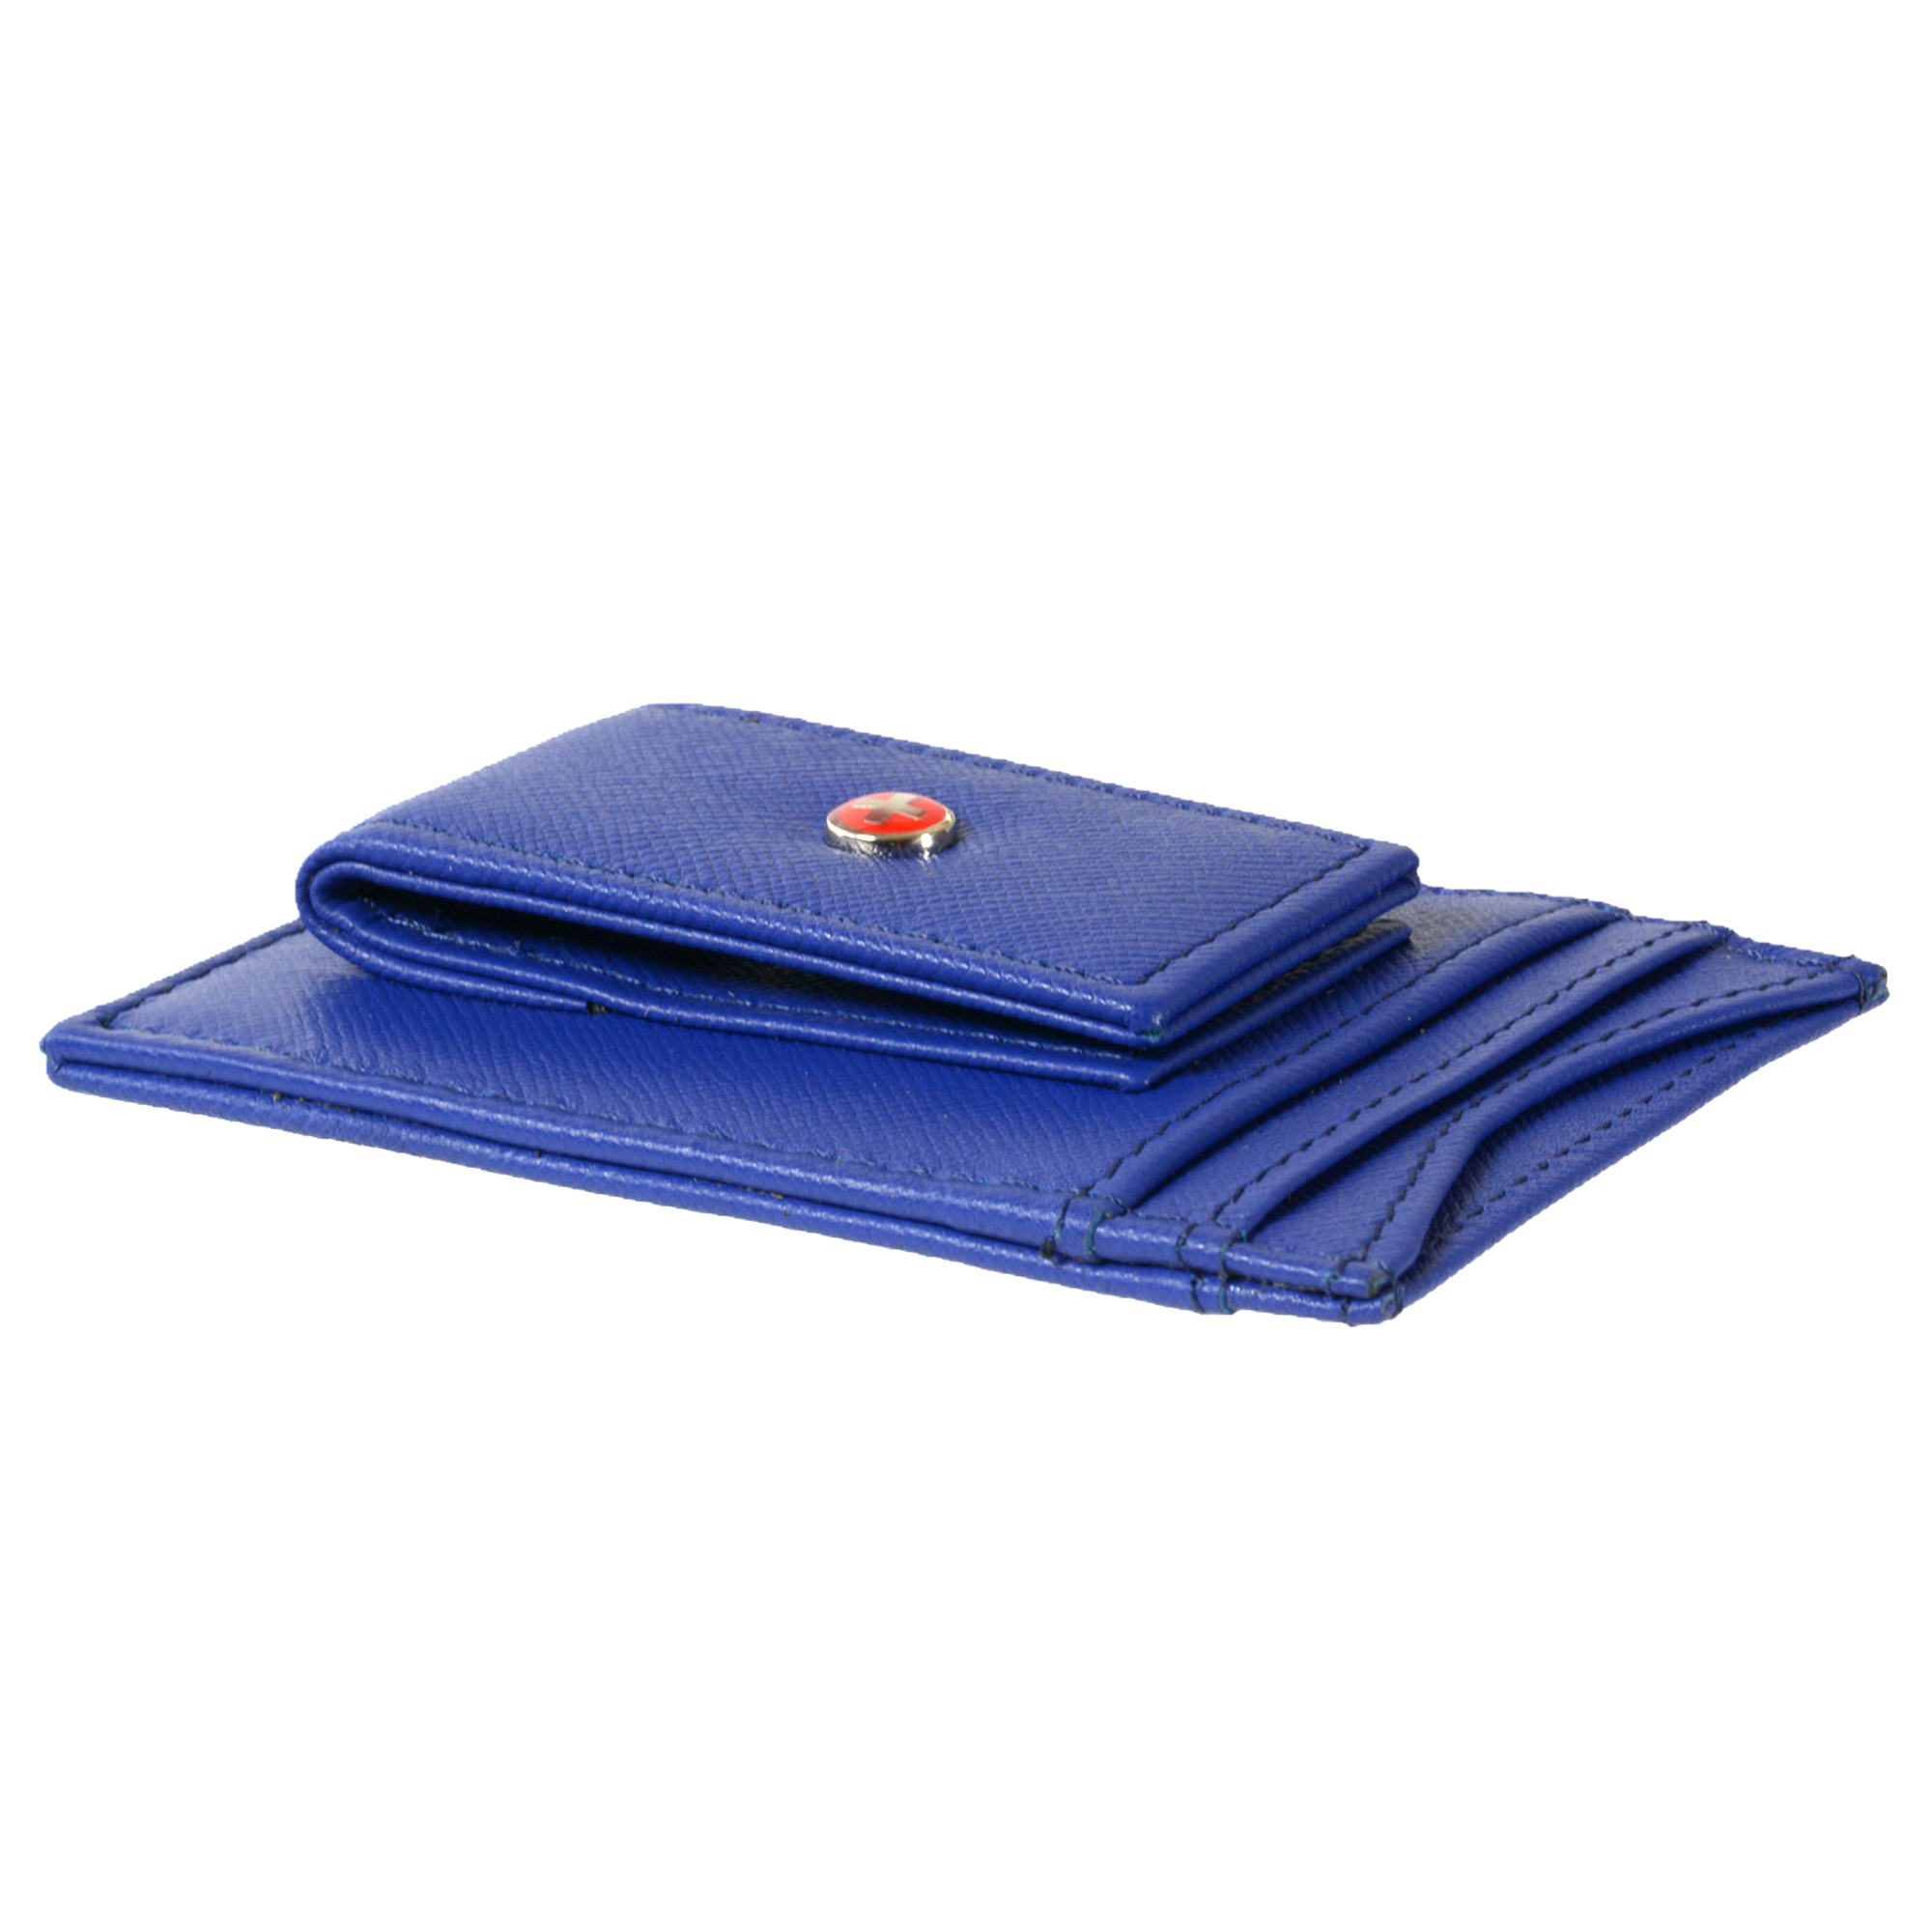 AlpineSwiss-Mens-Leather-Money-Clip-Magnet-Front-Pocket-Wallet-Slim-ID-Card-Case thumbnail 50